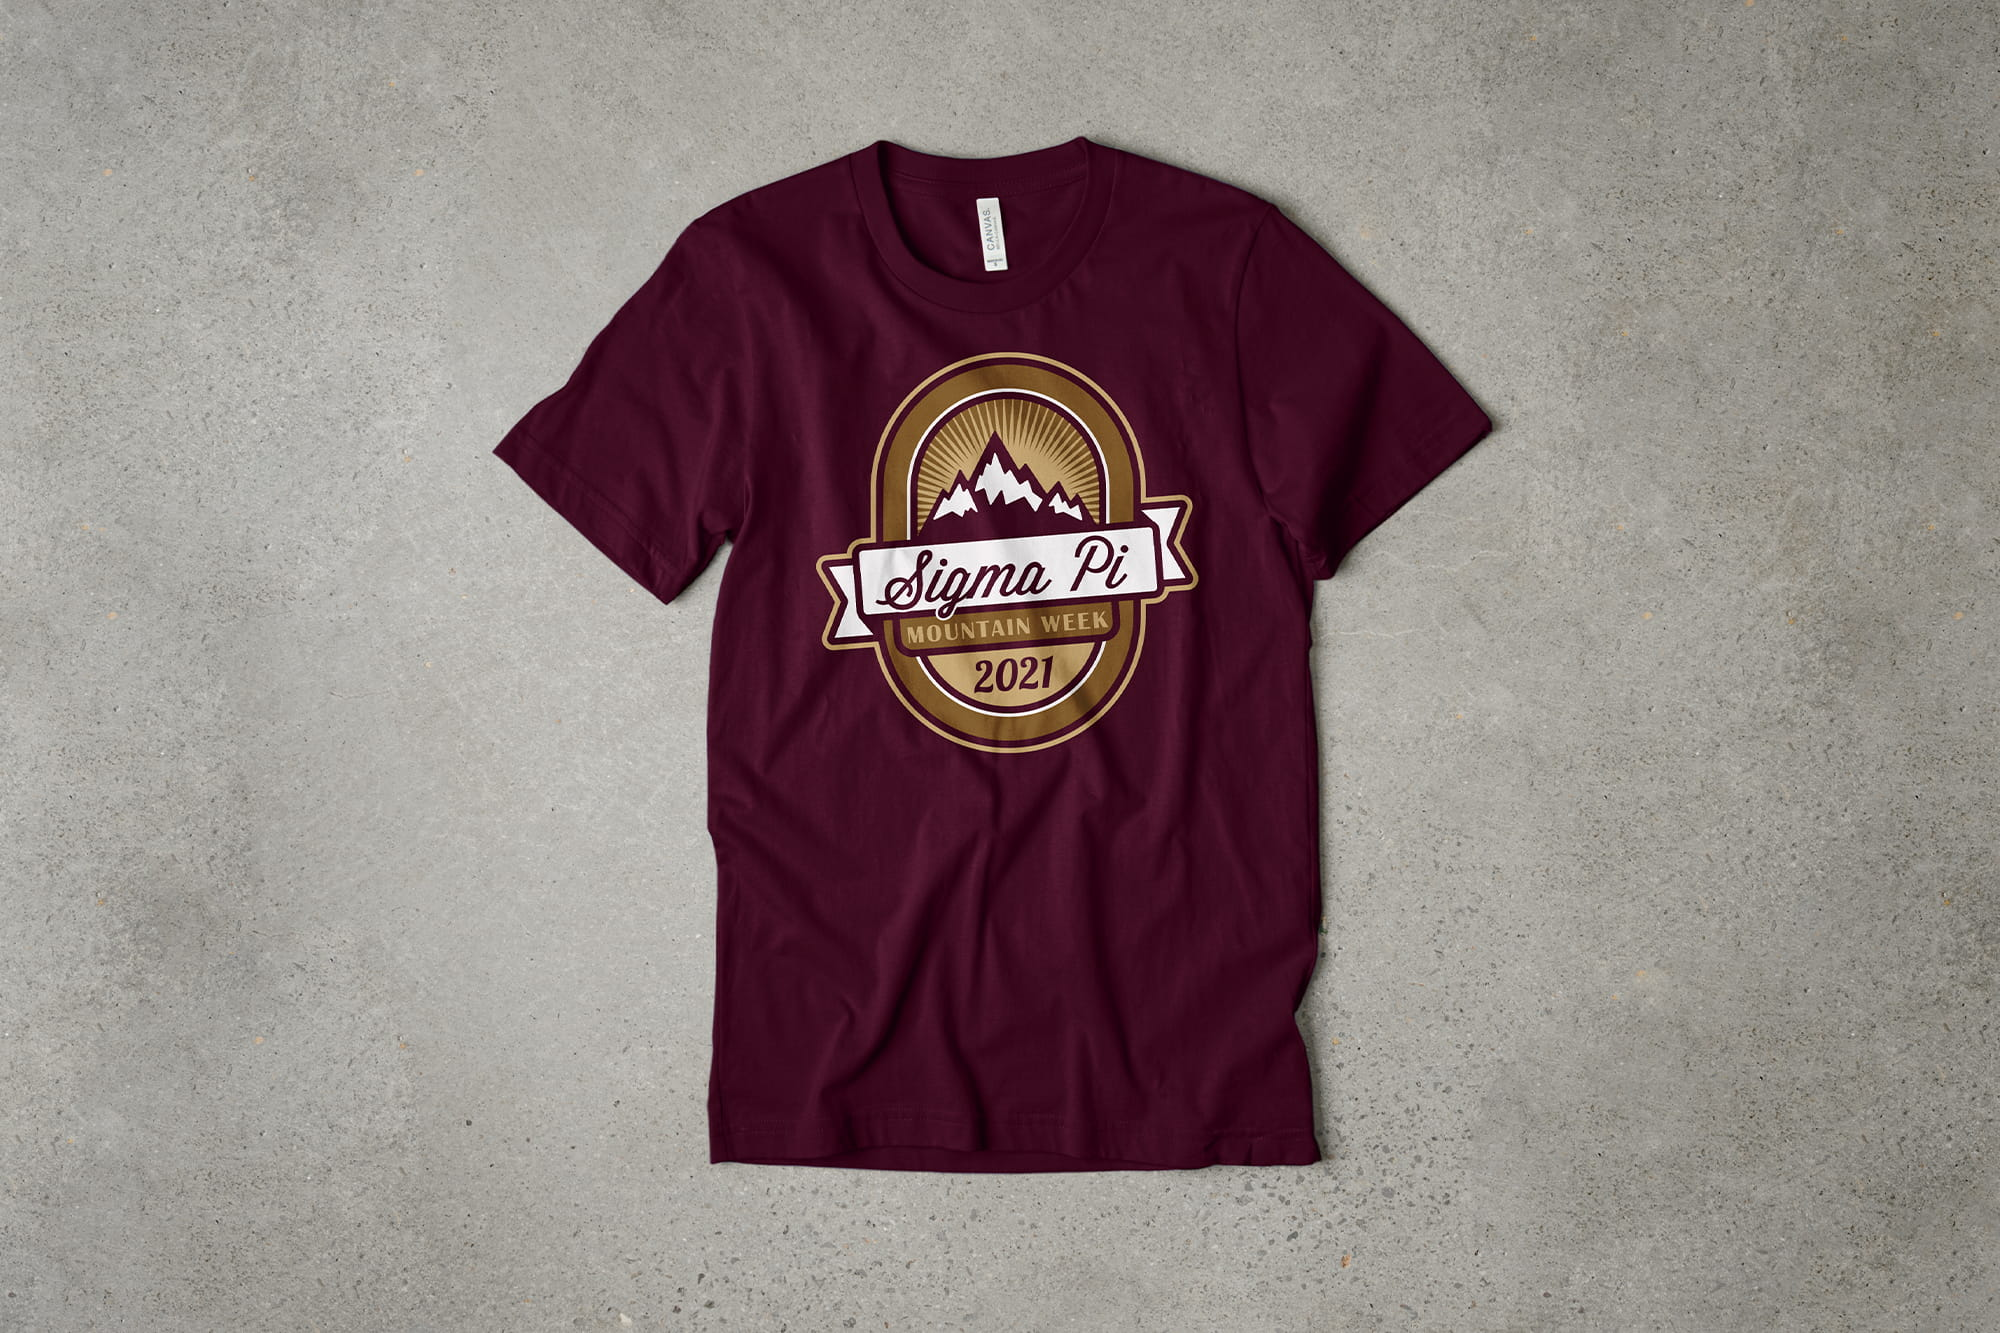 Example of using the t-shirt color as a color in your design.